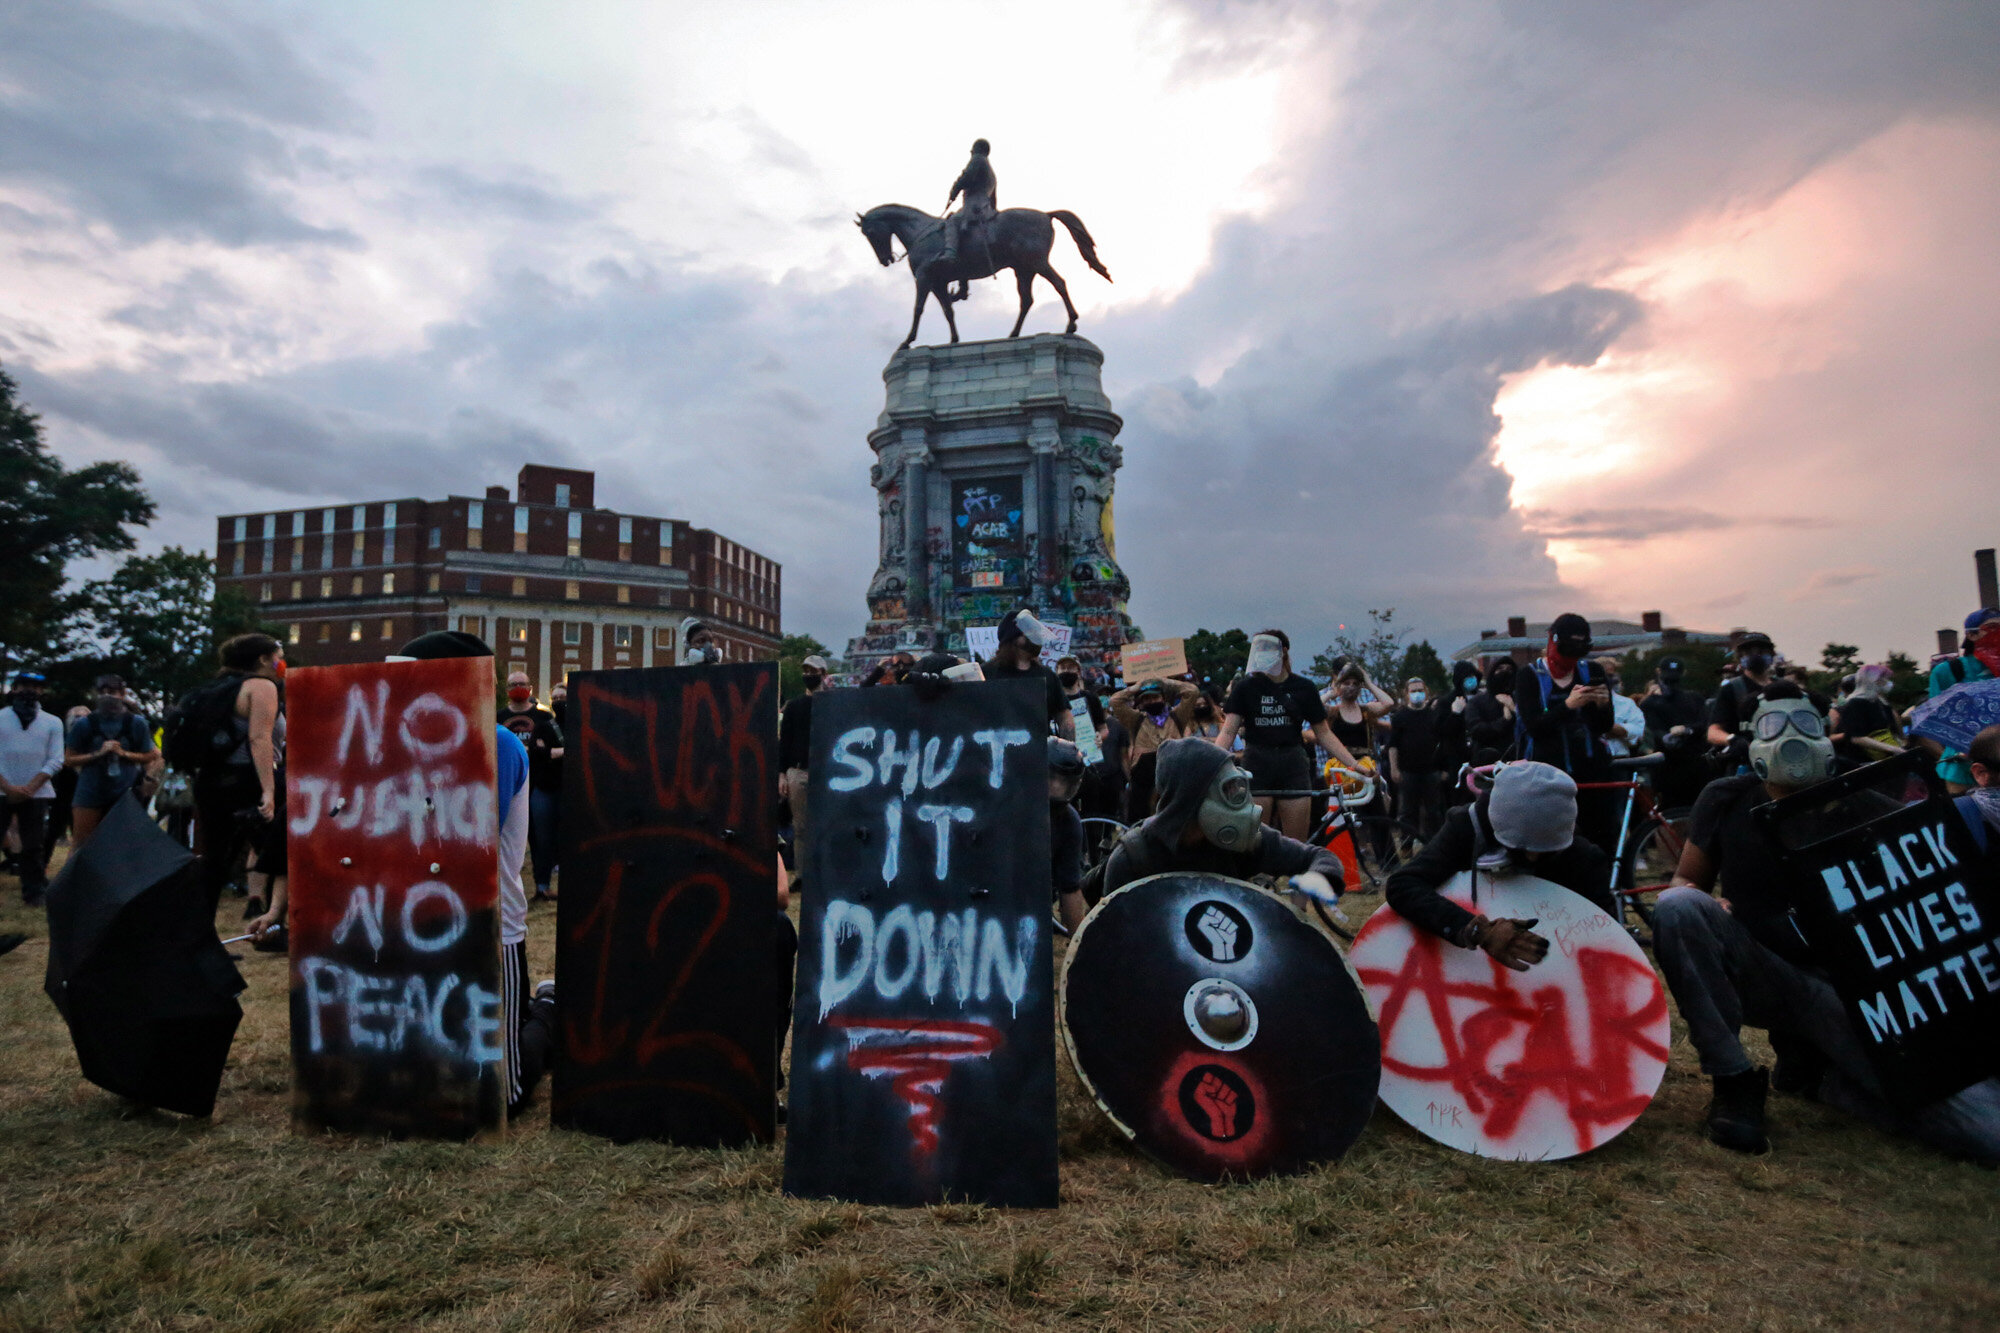 Protesters with shields and gas masks wait for police action as they surround the statue of Confederate Gen. Robert E. Lee on Monument Avenue in Richmond, Va., on June 23, 2020. The state ordered the area around the statue closed from sunset to sunrise, but the protesters had no plans to disperse. (AP Photo/Steve Helber)